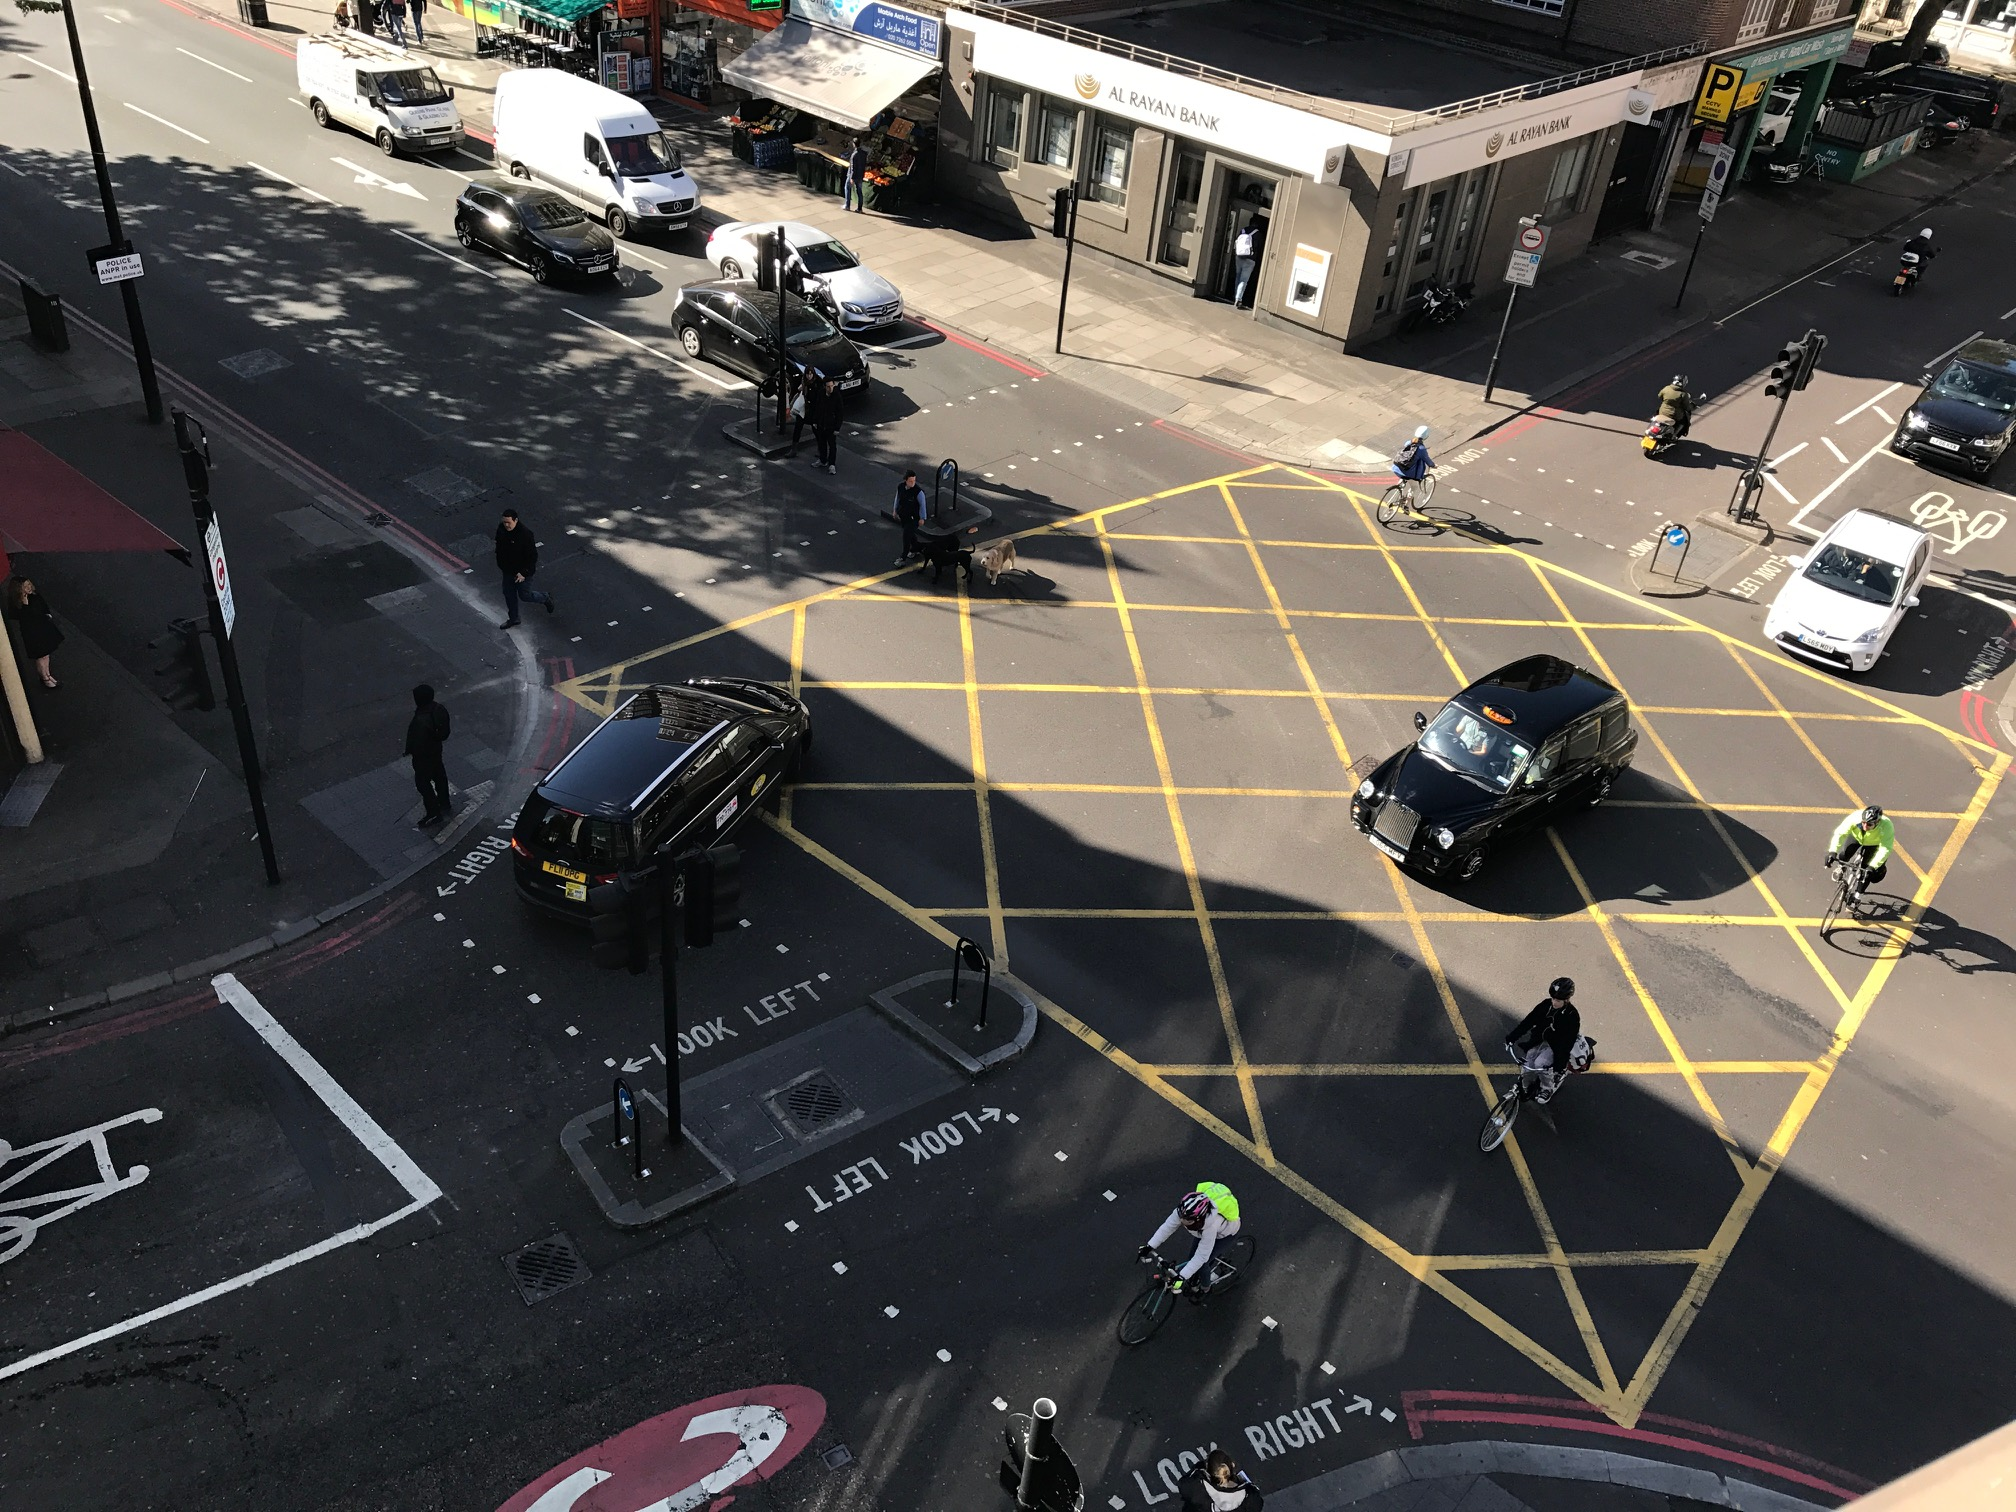 Safer Junctions on Edgware Road